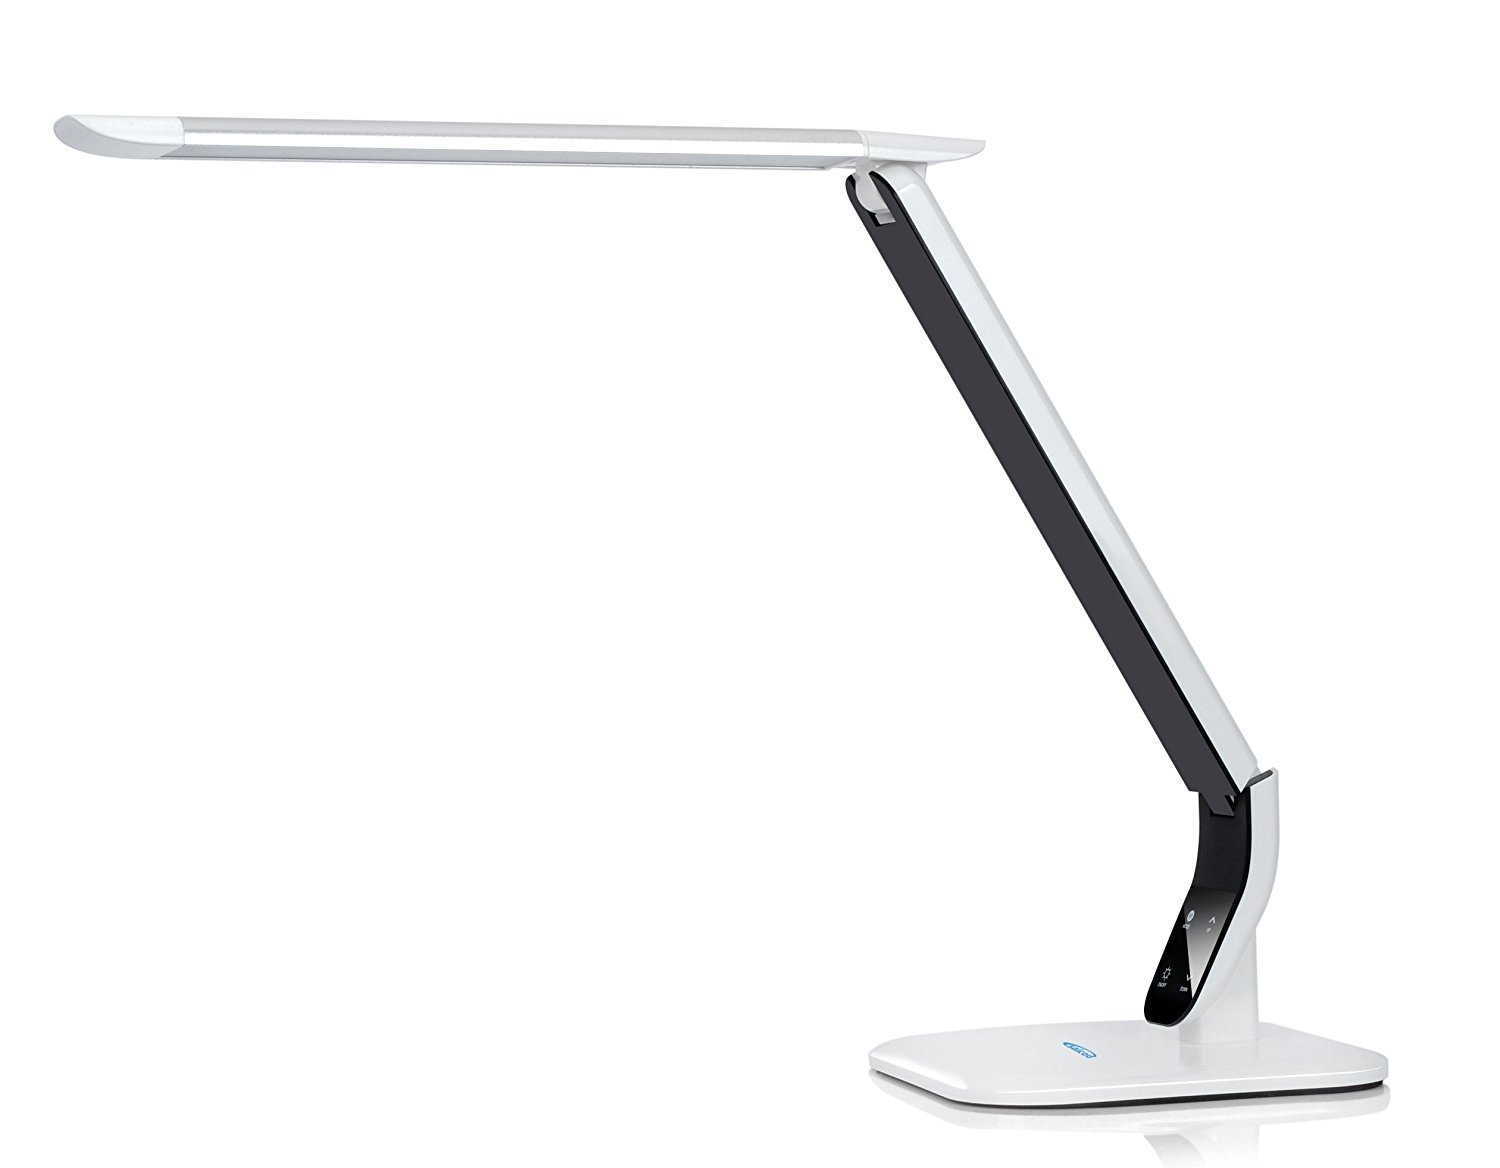 Saicoo? 10W Multi-function LED Eye-protection Desk Lamp - #1 desk lamp with aluminum alloy light head, 3 Lighting Modes (Studying, Reading and Relaxation/Bedtime), with 5 Level Brightness Control for each mode